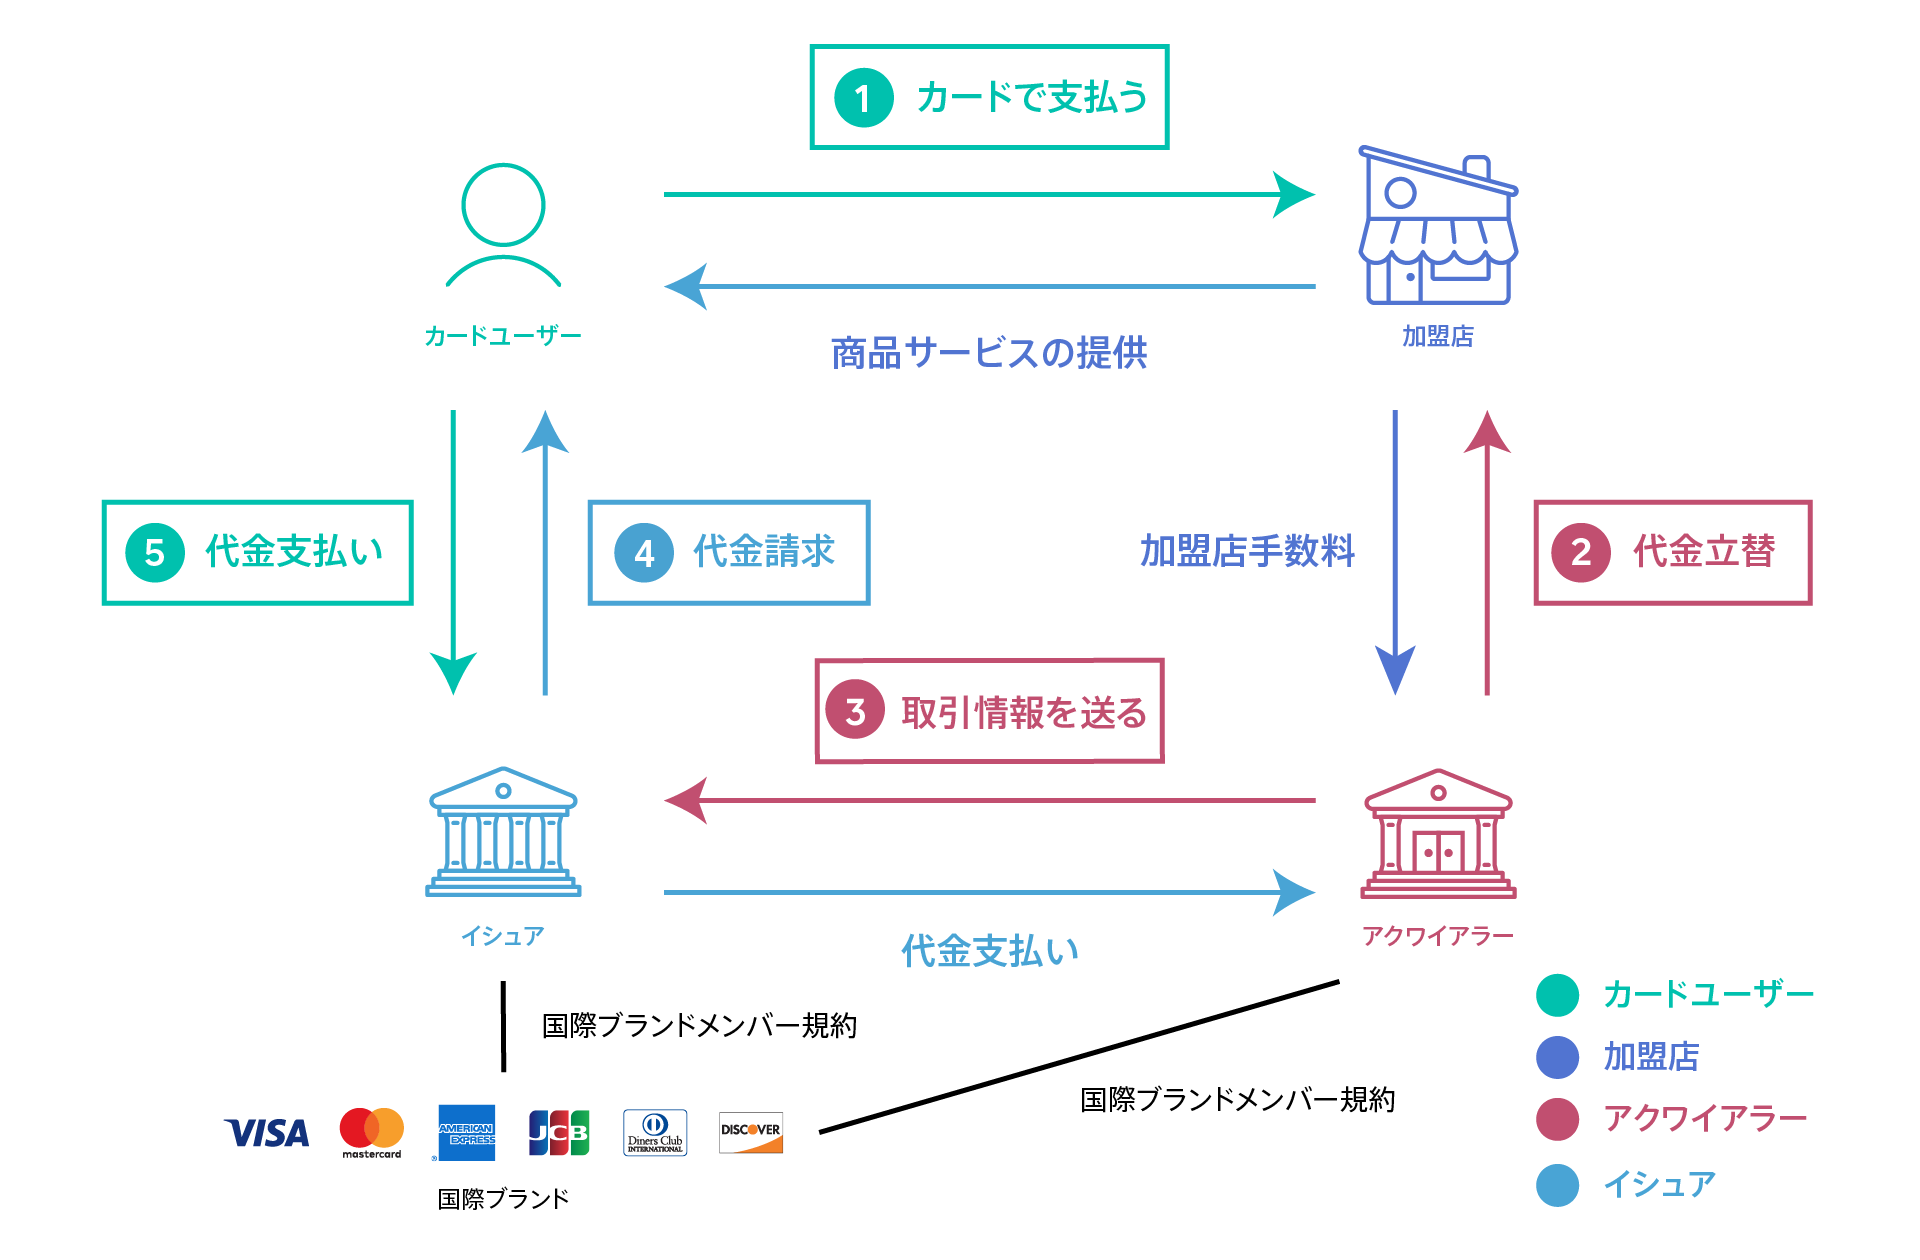 jp-blog-cashless-guide01